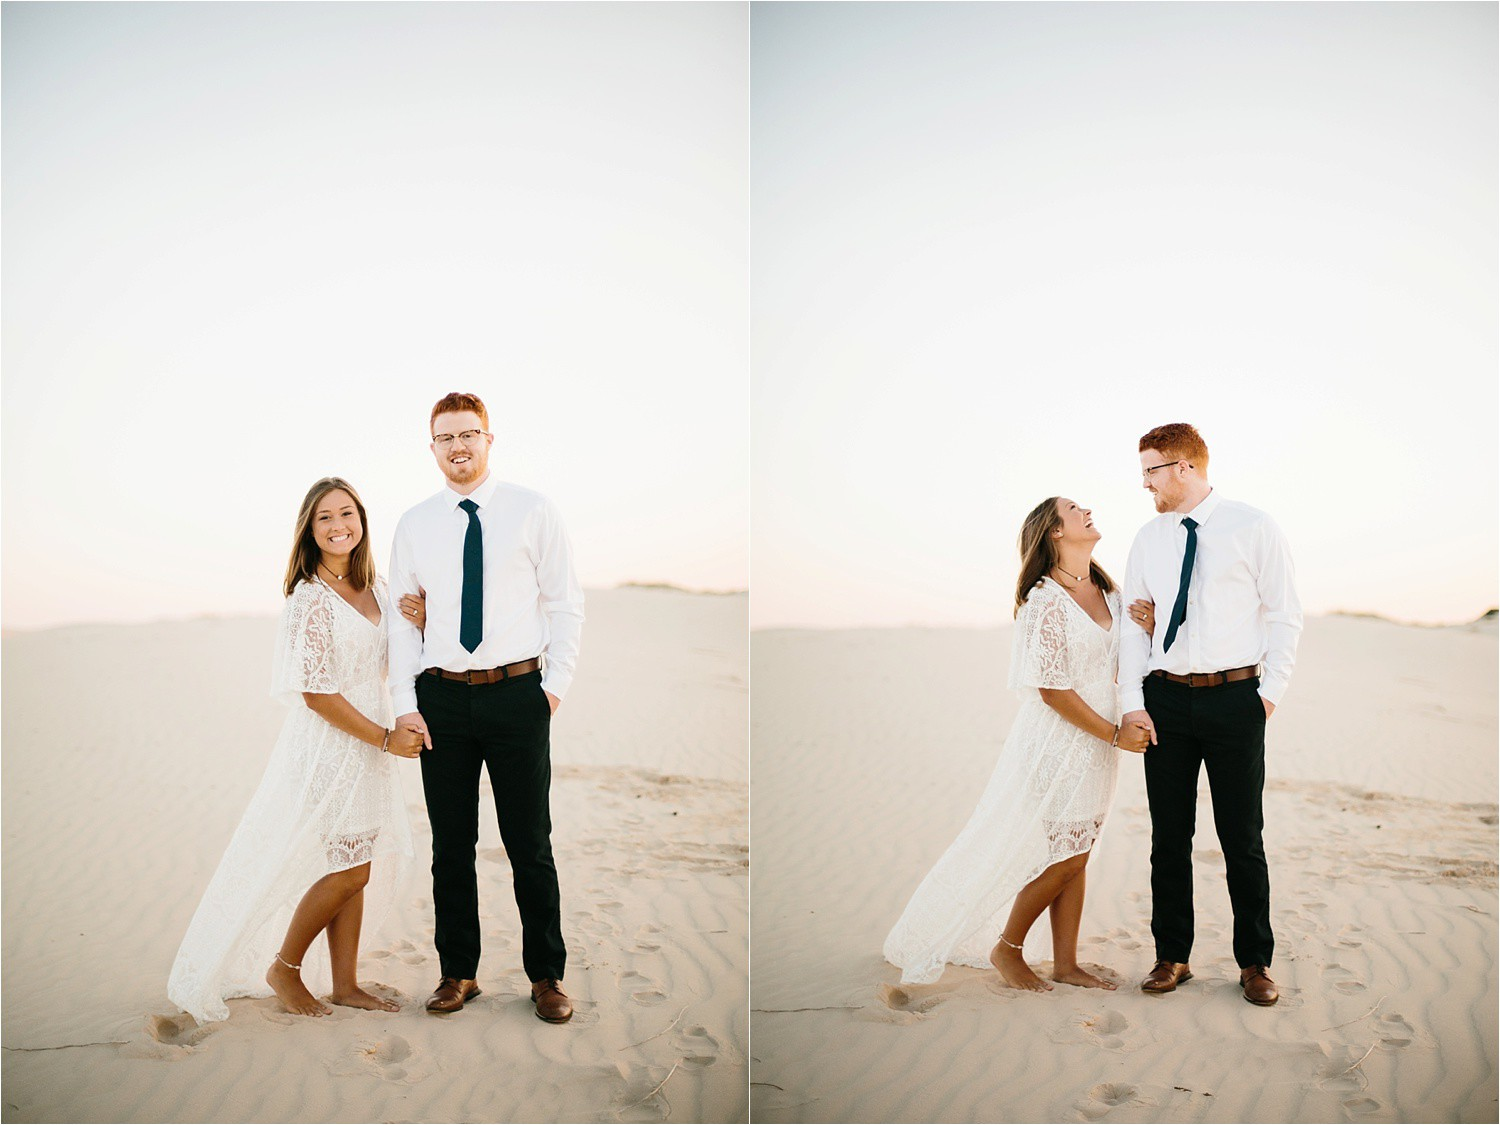 Lauren + Jacob __ a monahans sand dunes engagement session at sunrise by North Texas Wedding Photographer, Rachel Meagan Photography __ 09